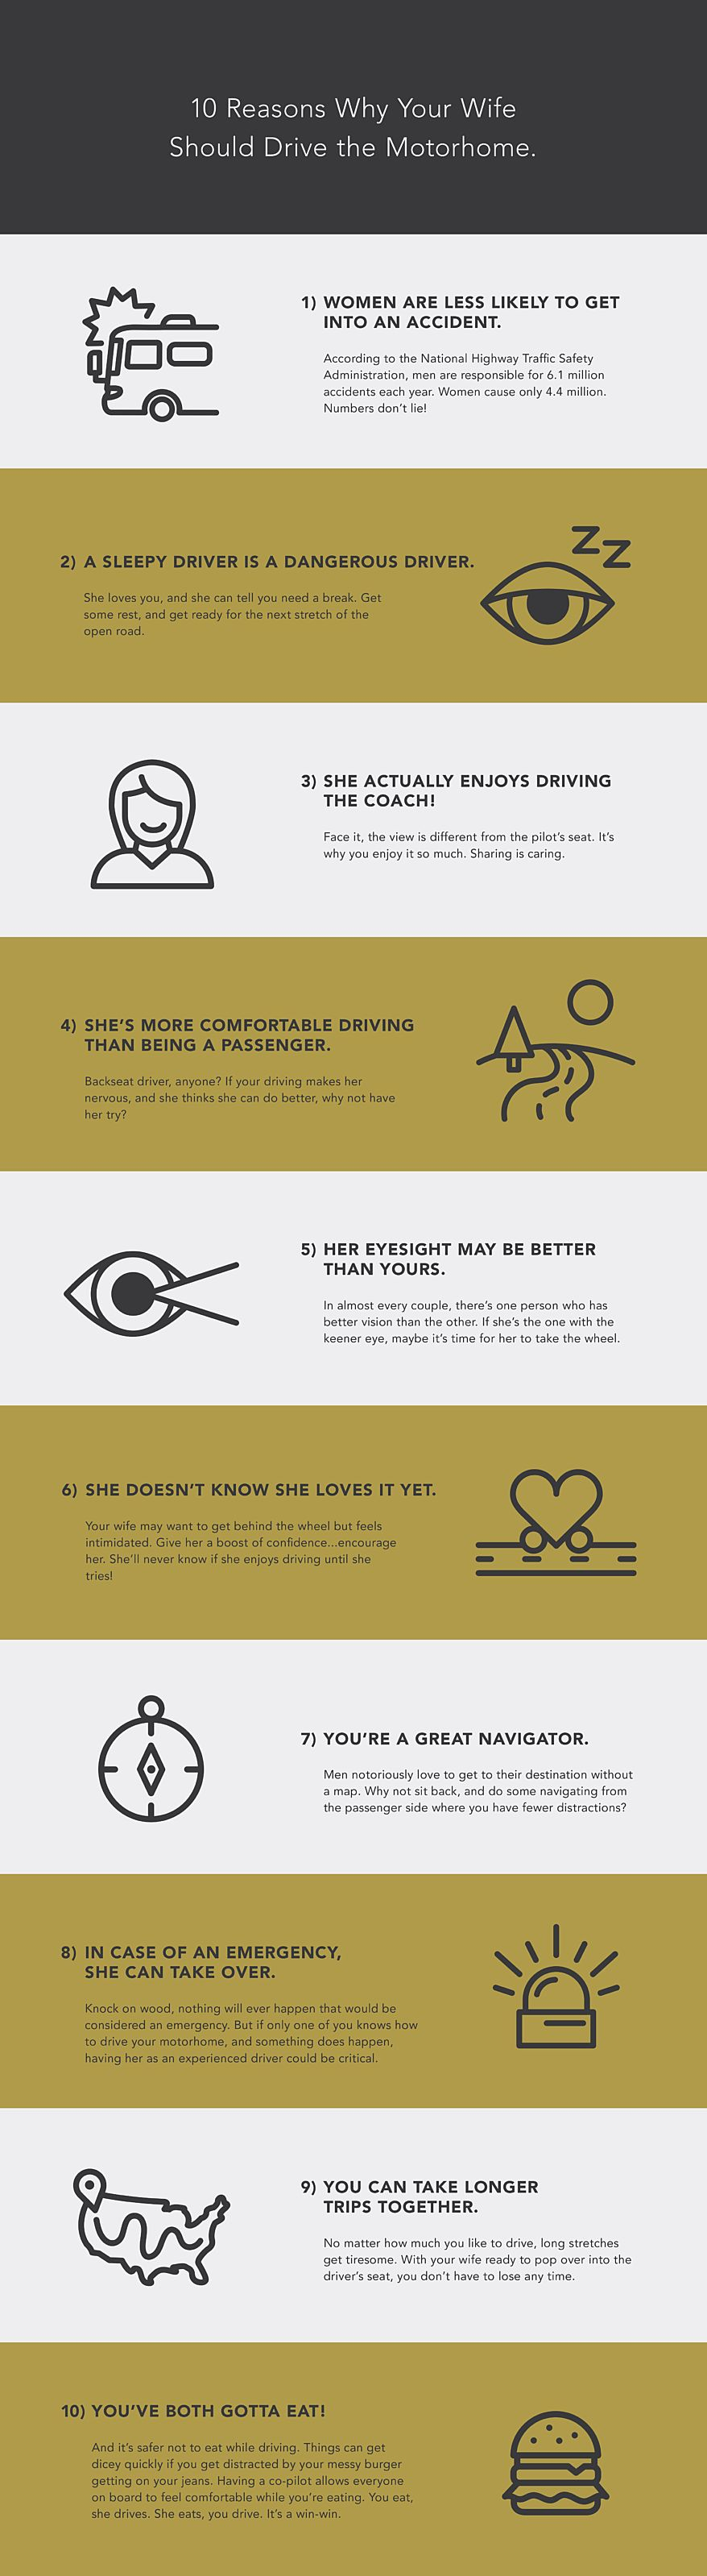 10 Reasons Infographic 1